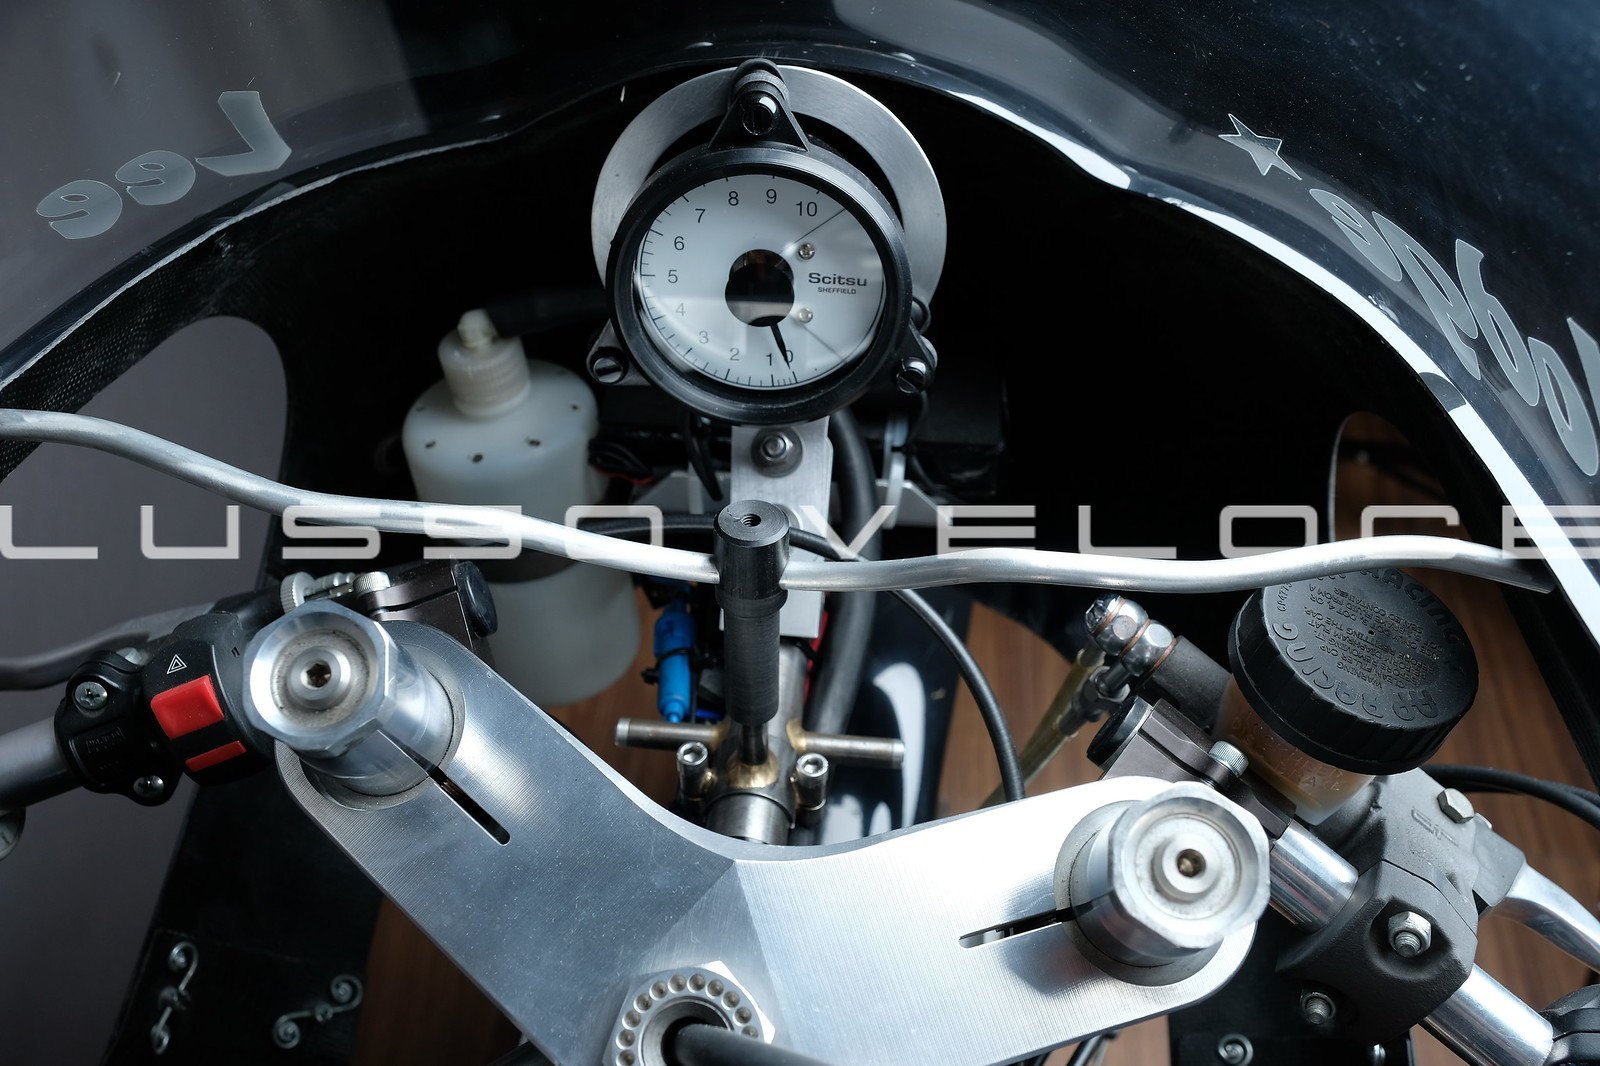 1972 Norton Seeley Commando 750 race bike For Sale (picture 18 of 20)